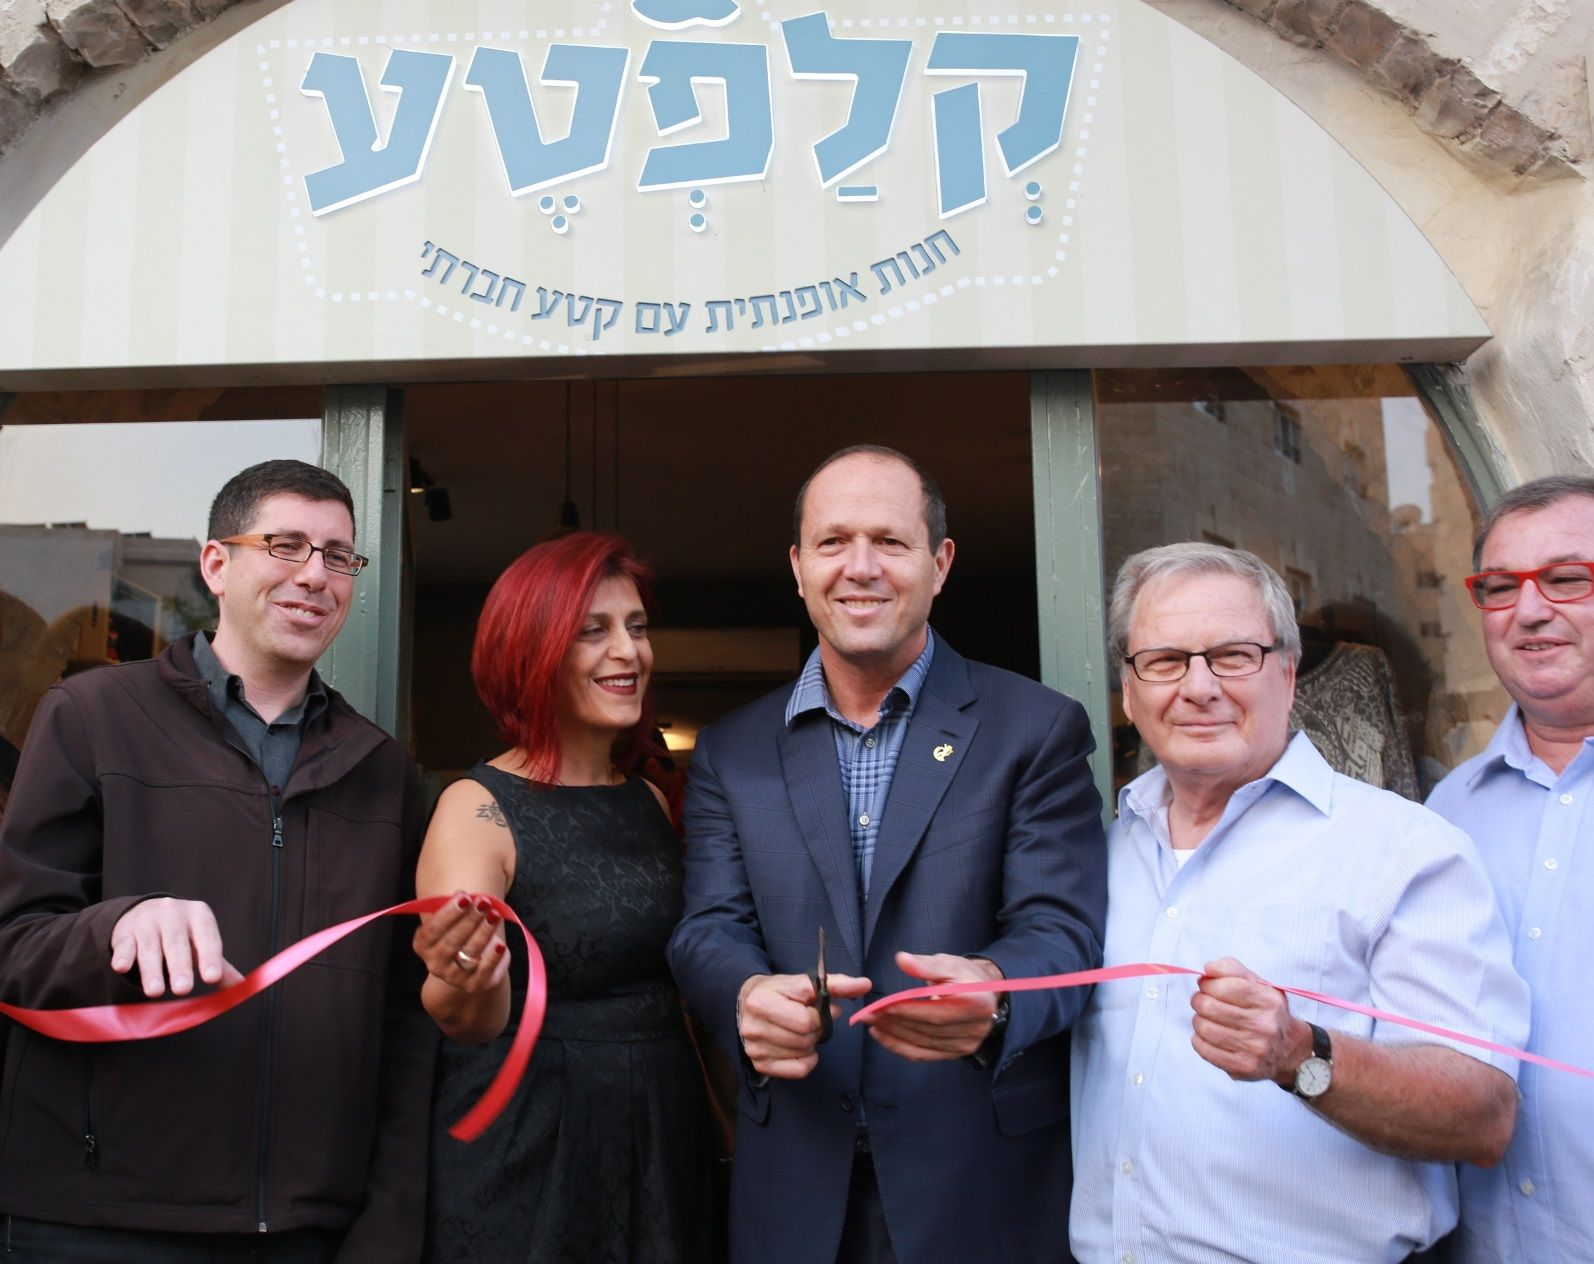 At the opening of Dualis Social Investment Fund's Klafte clothing store for the benefit of young women at risk, in downtown Jerusalem, from left: Itzik Sabato of the National Insurance Institute, Klafte manager Smadar Portnoy, Jerusalem Mayor Nir Barkat, Dualis board member Zvi Ziv and Dualis chairman Allan Barkat.